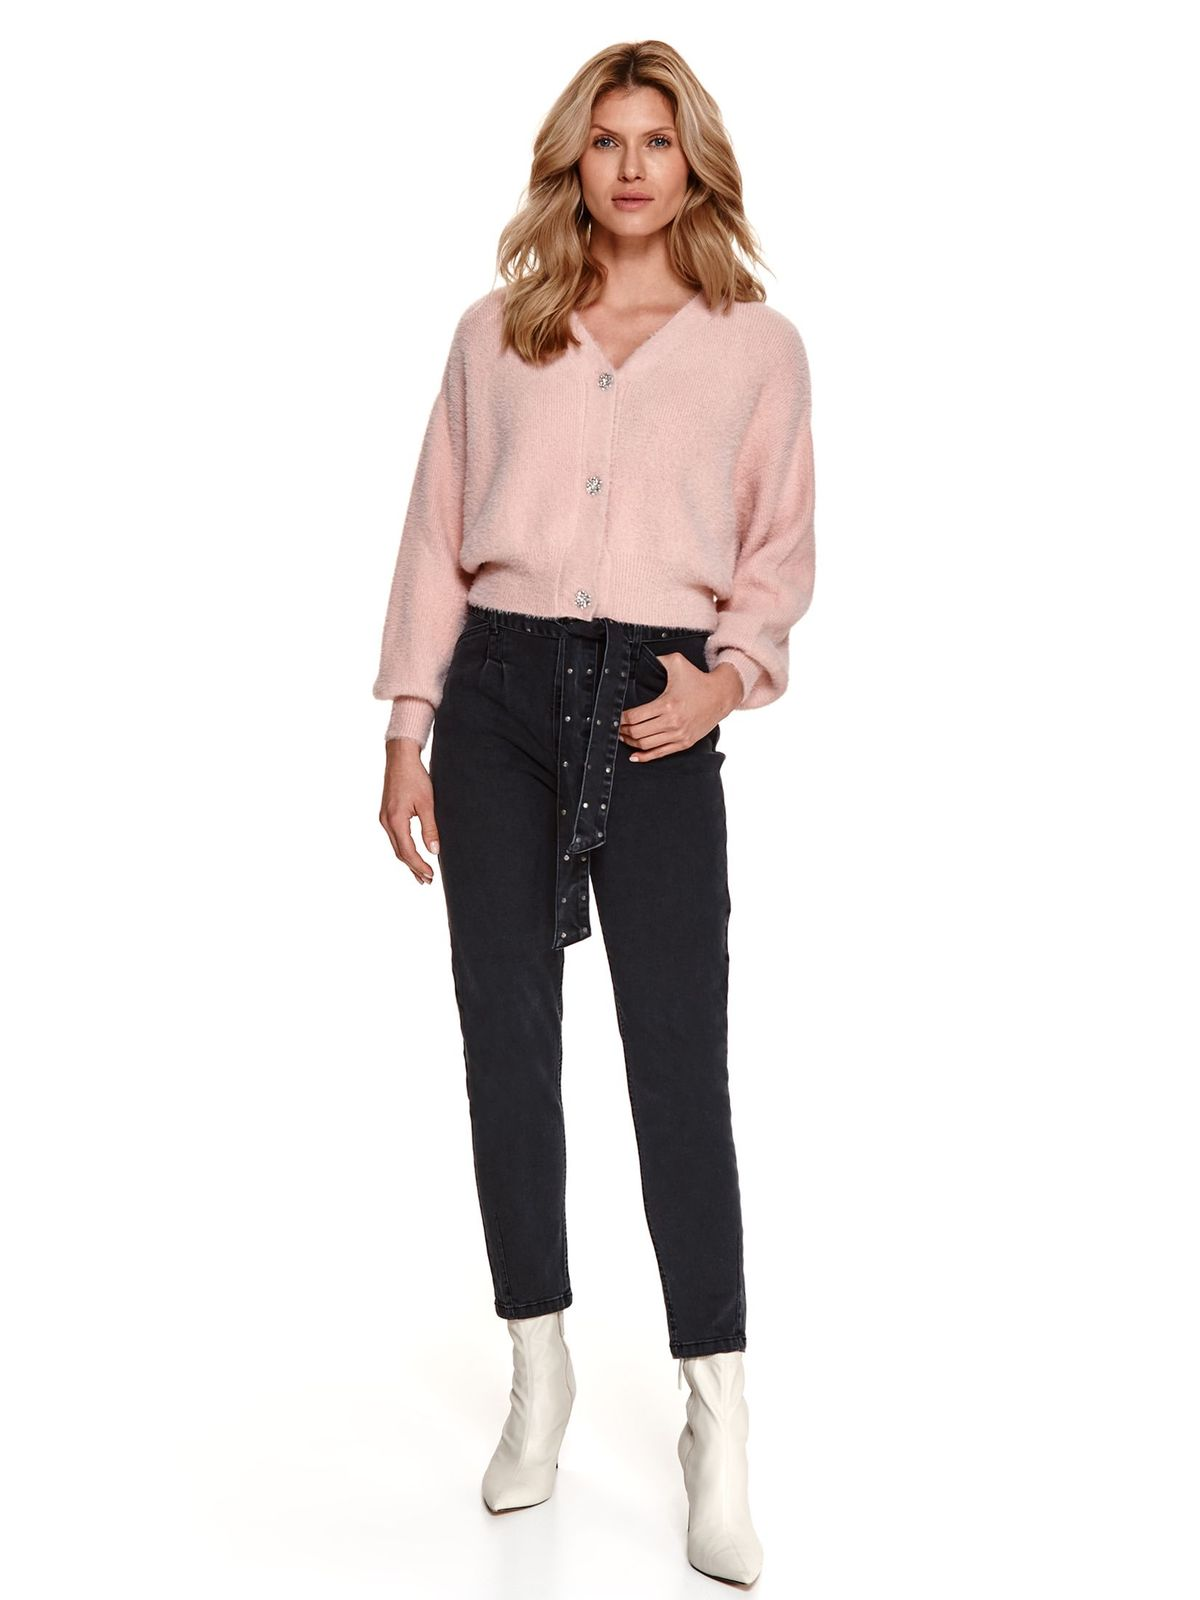 Black trousers denim conical accessorized with tied waistband high waisted